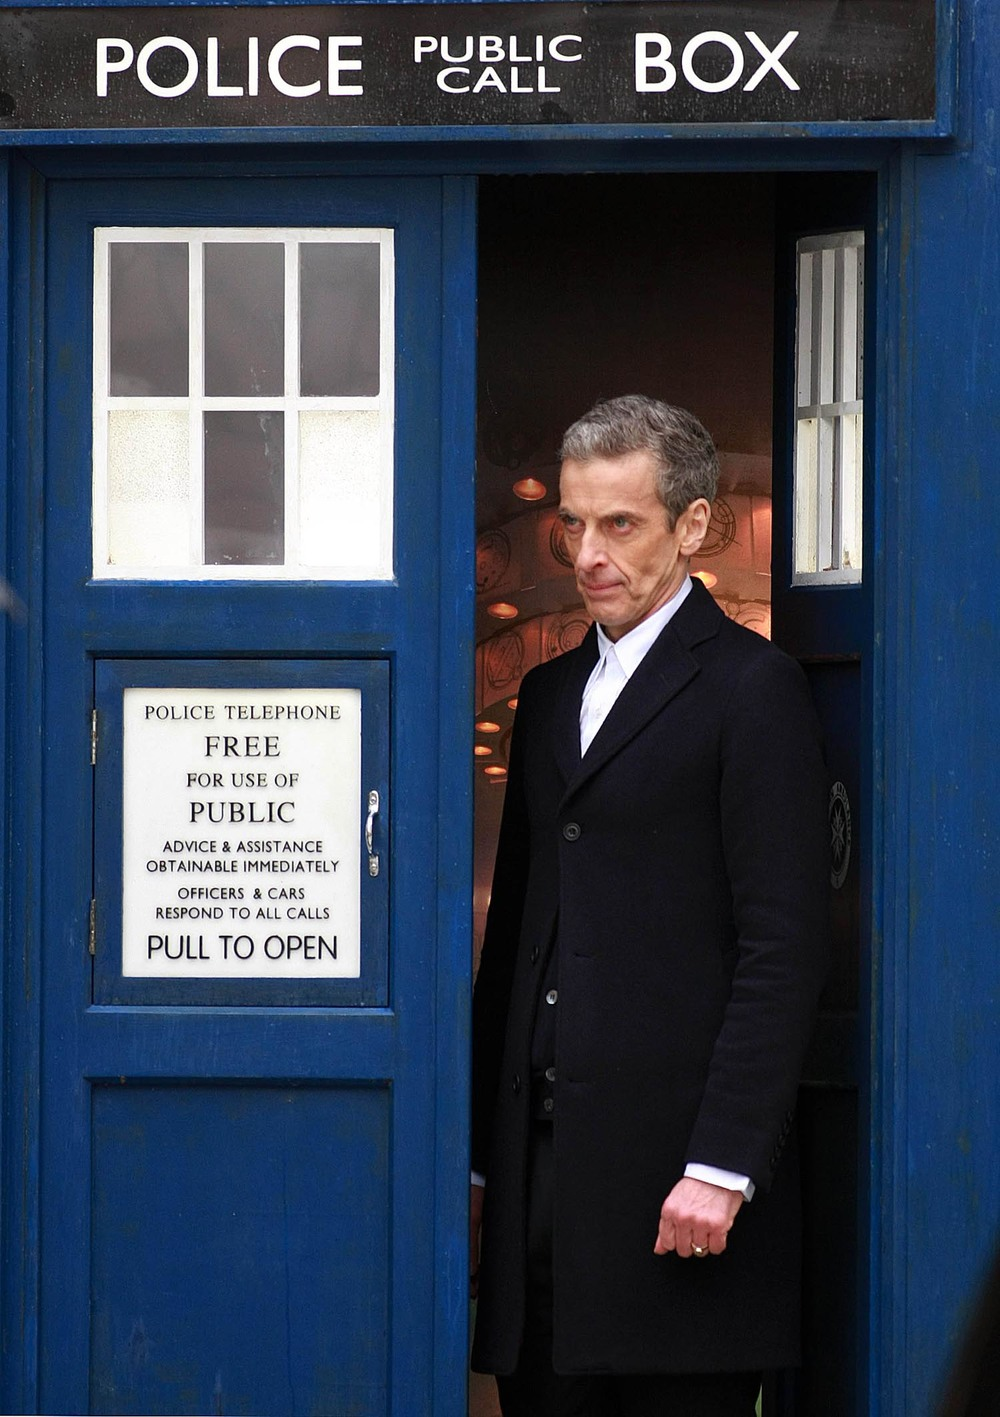 Peter Capaldi in the TARDIS